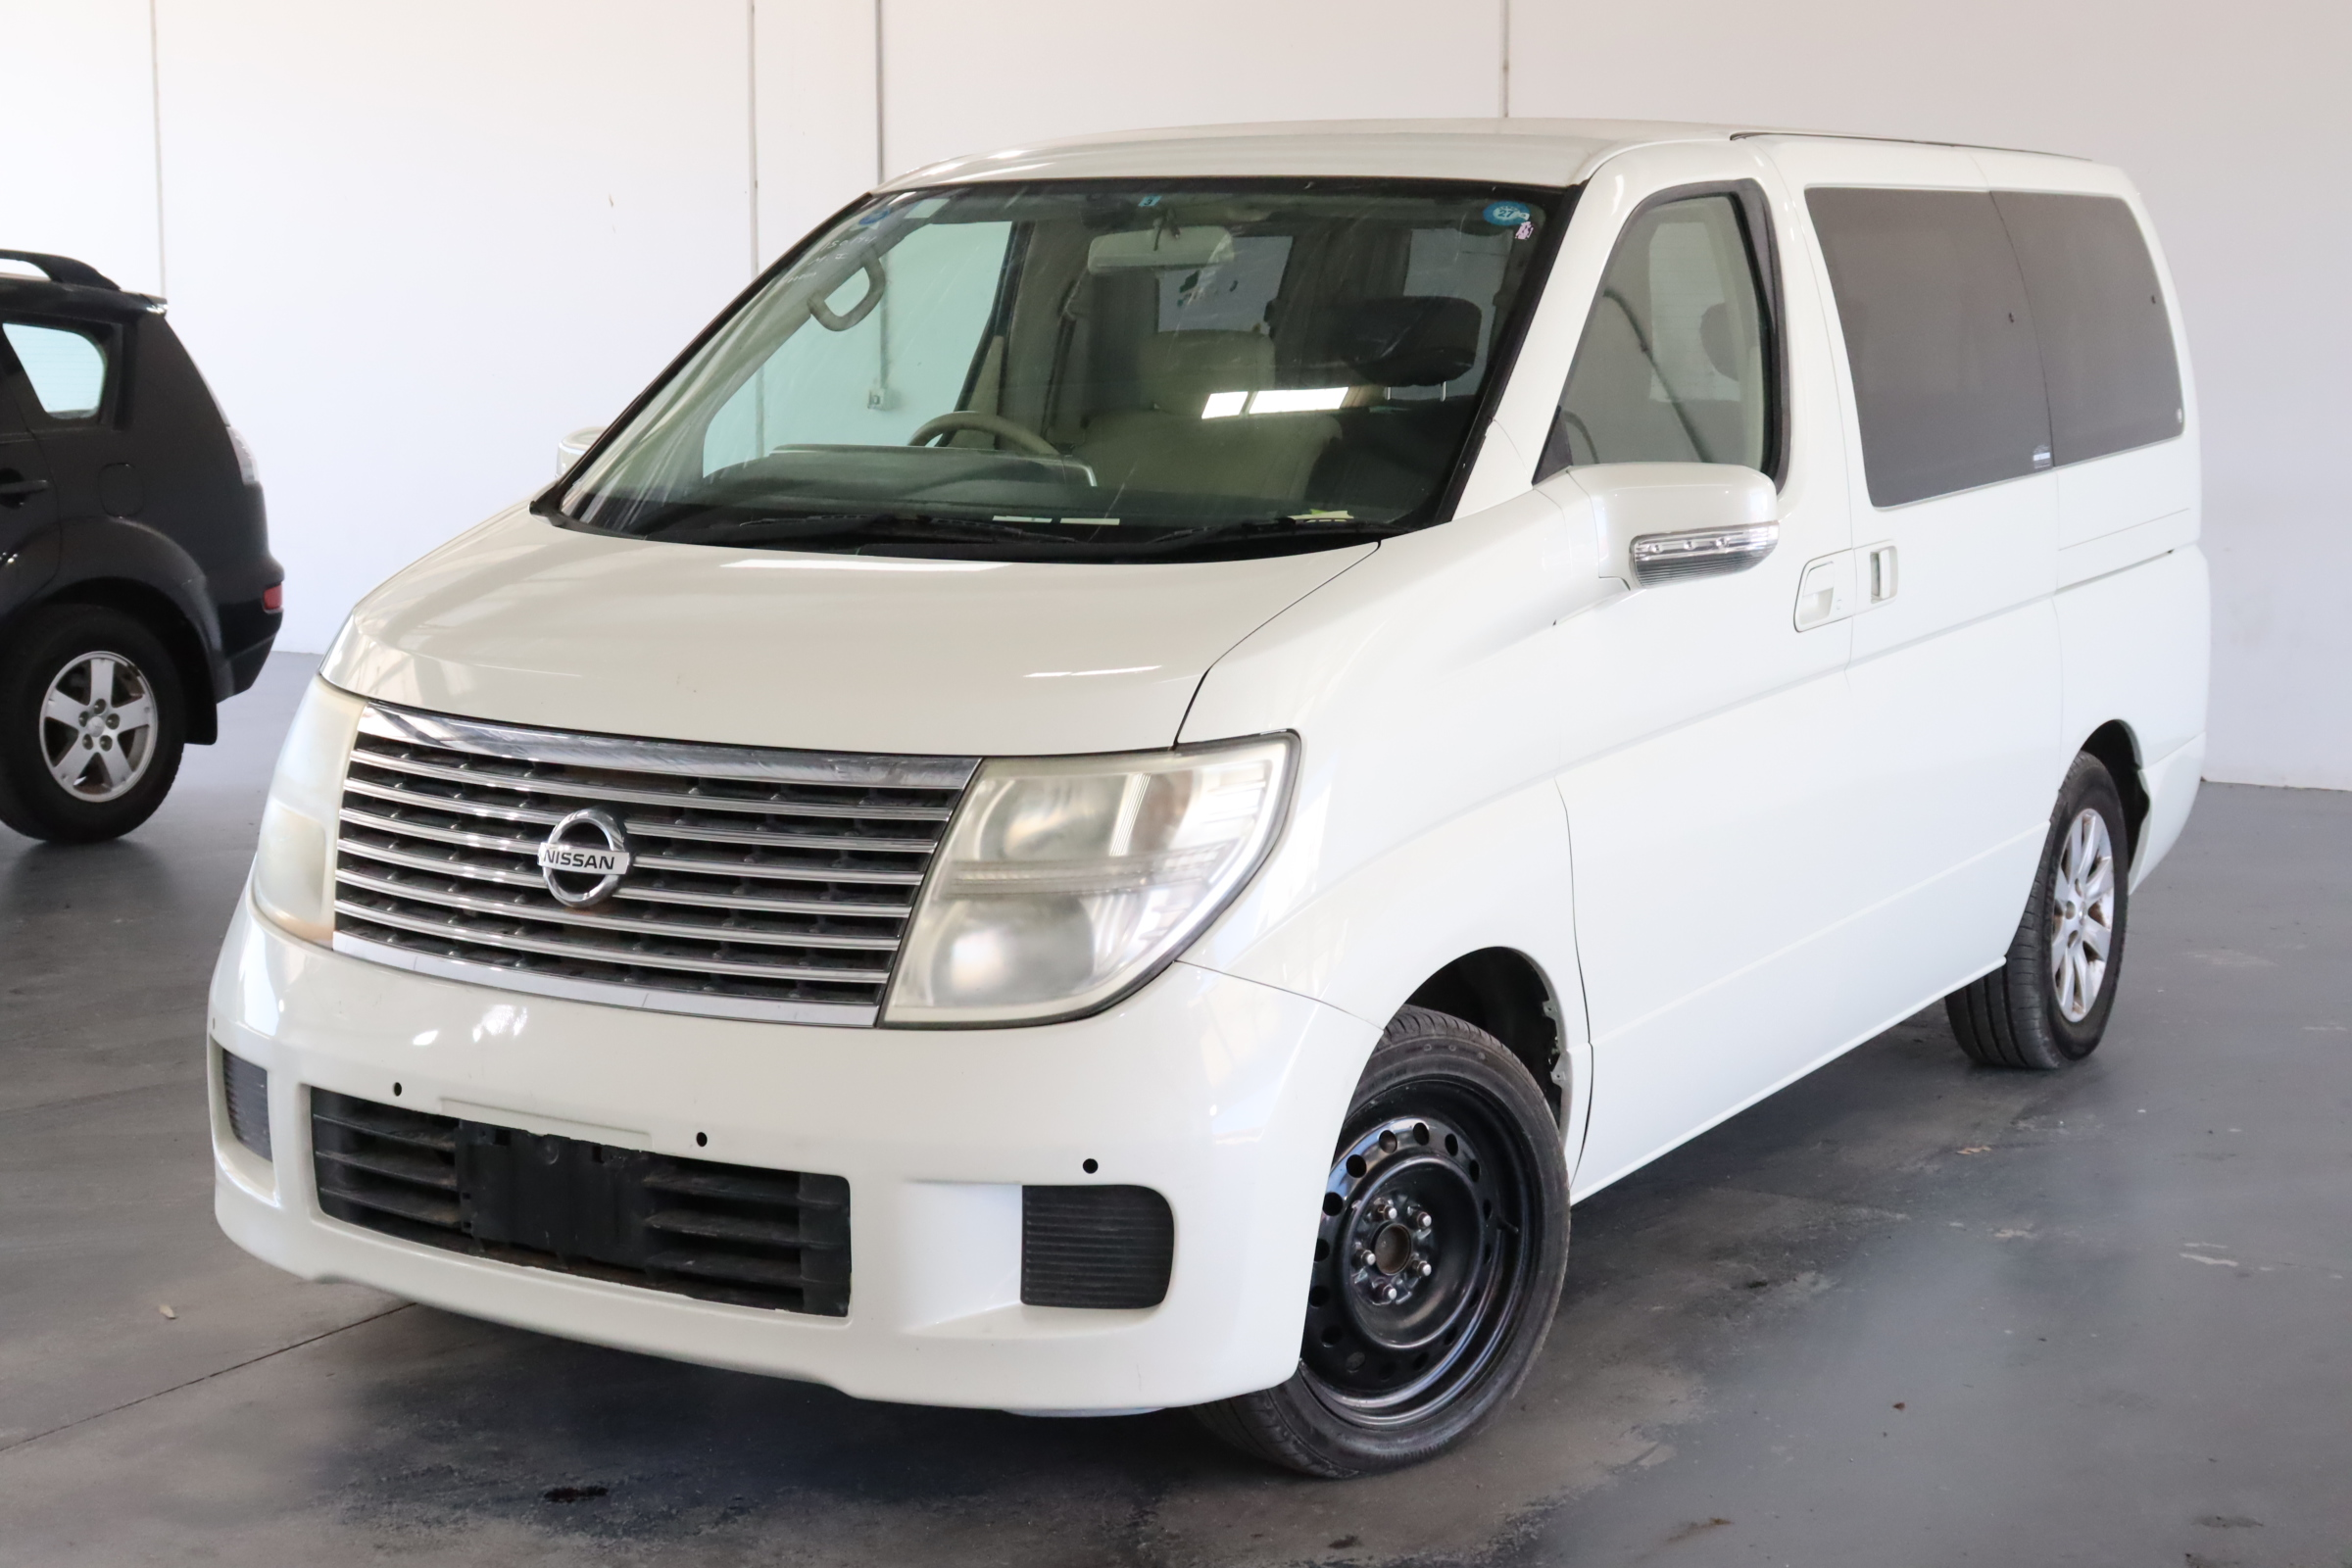 2006 Nissan Elgrand Automatic 7 Seats People Mover